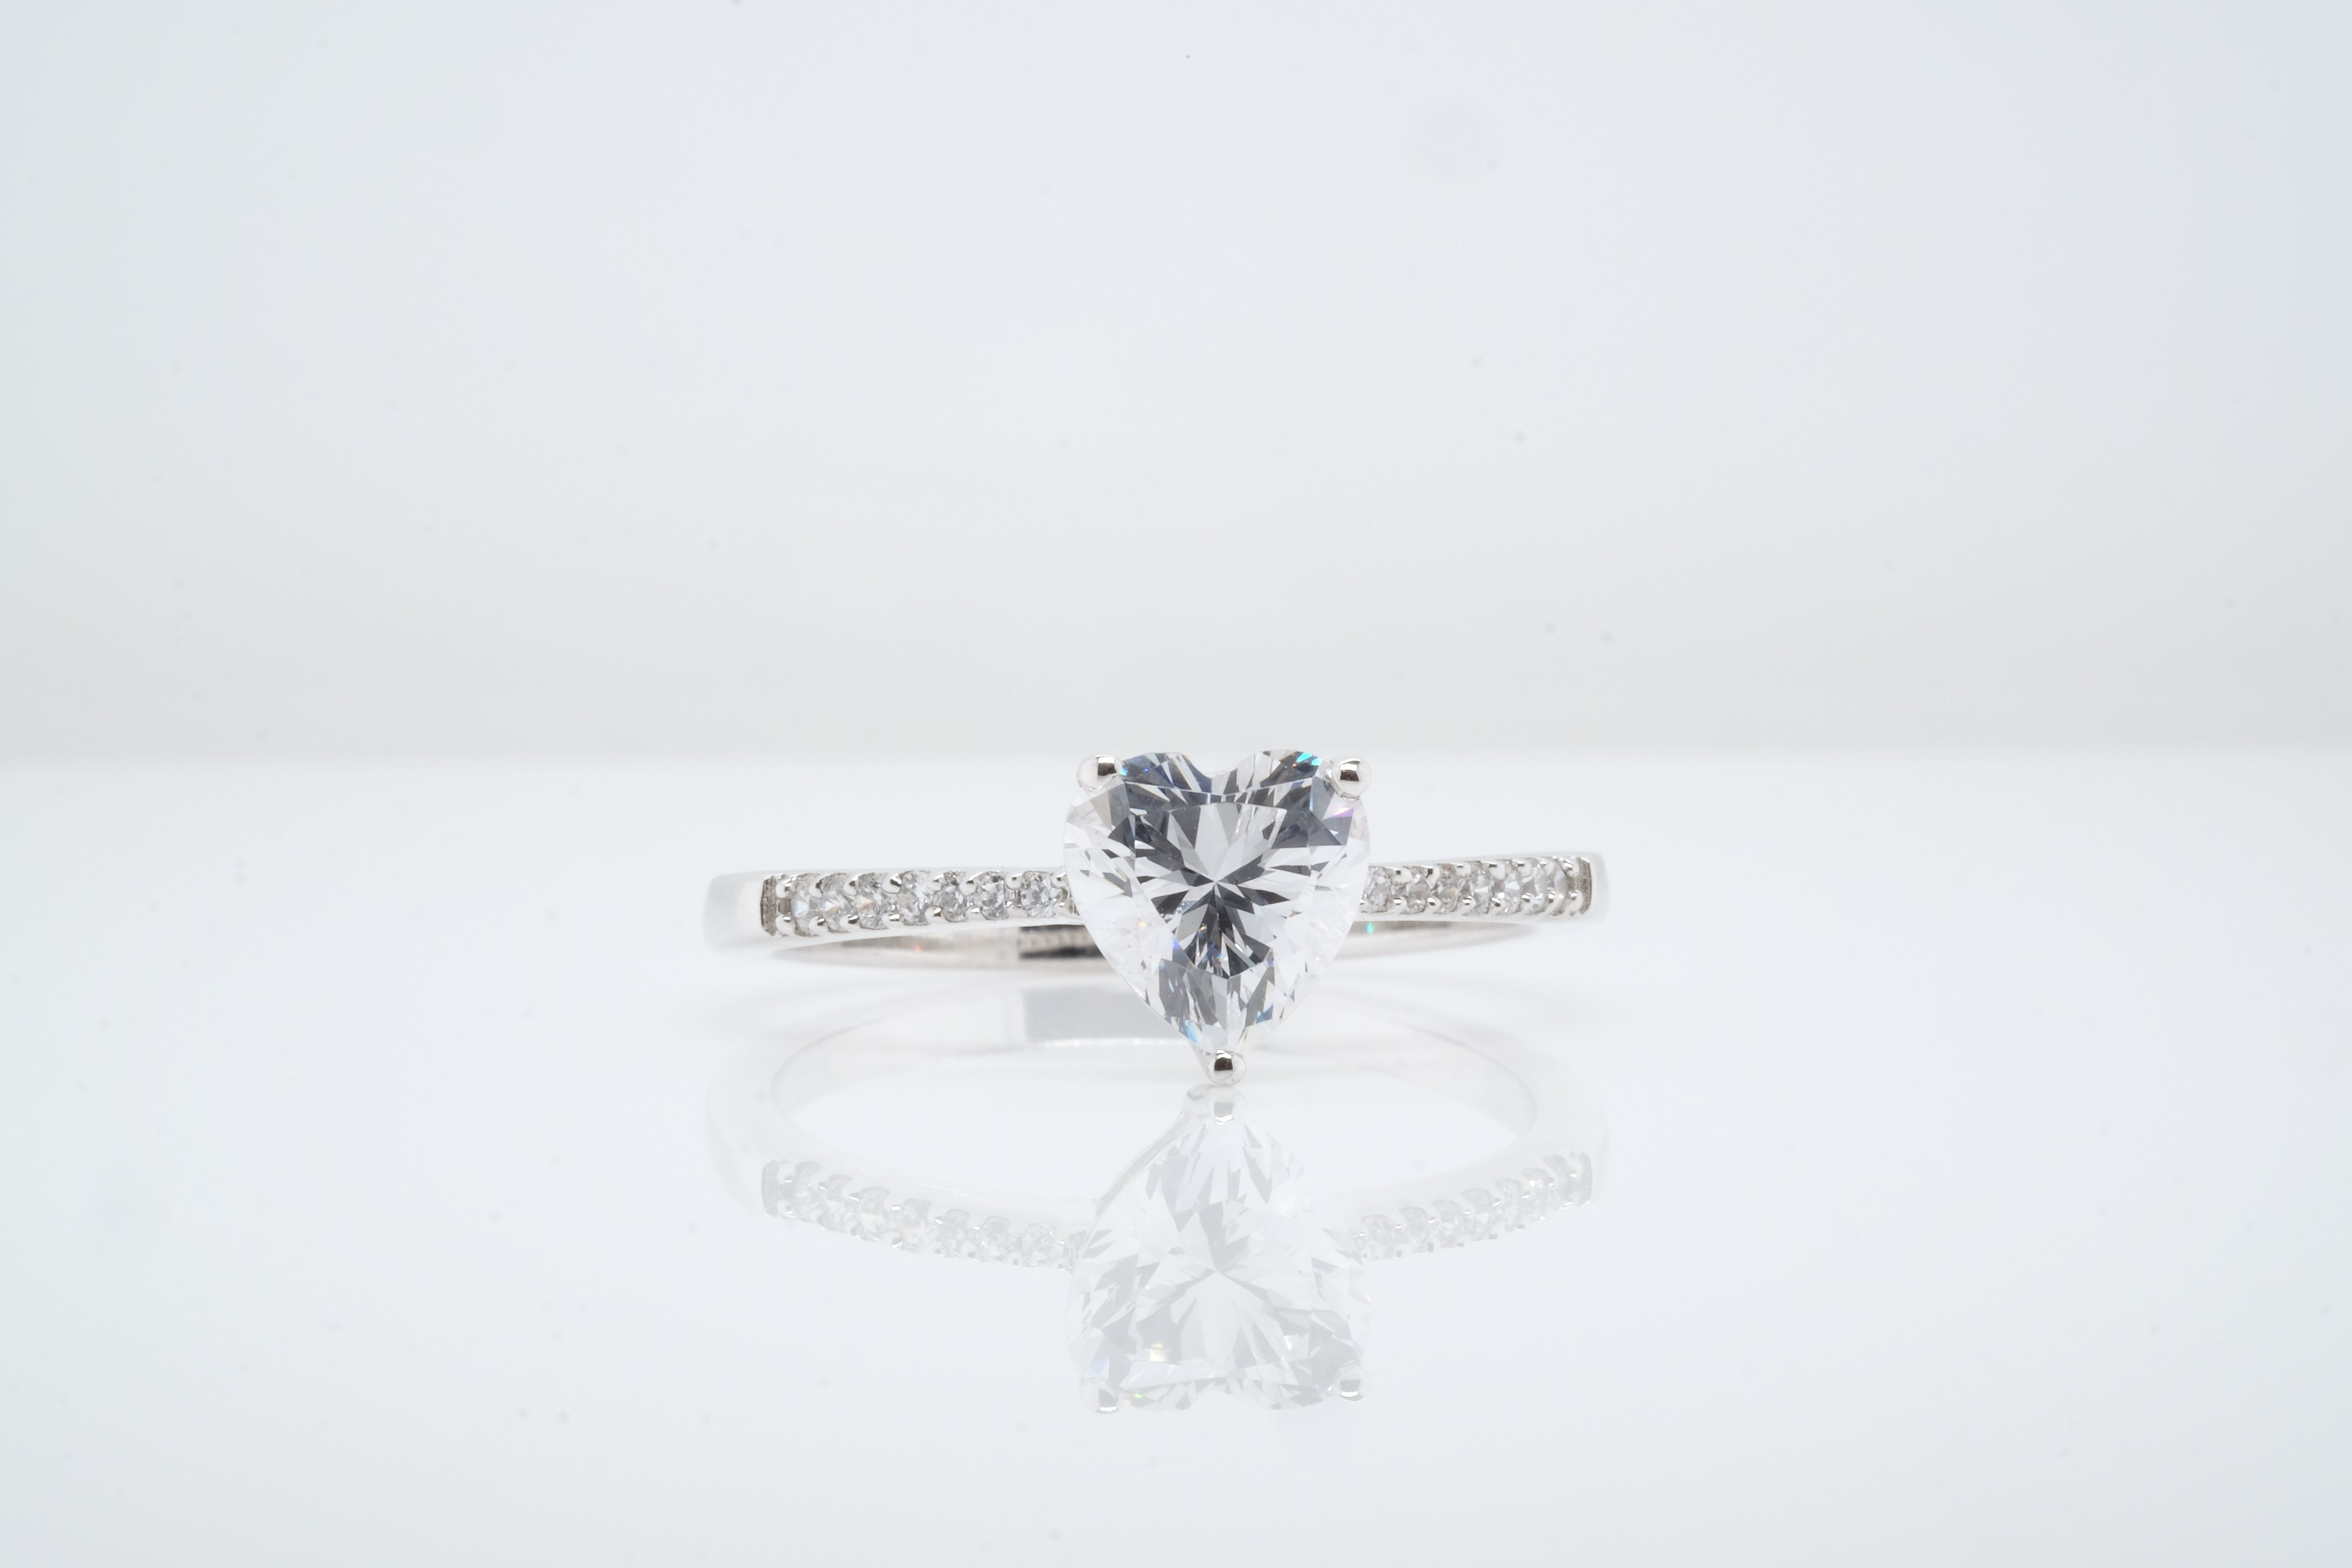 Goddess Astraea Ethereal Solitaire Heart Ring